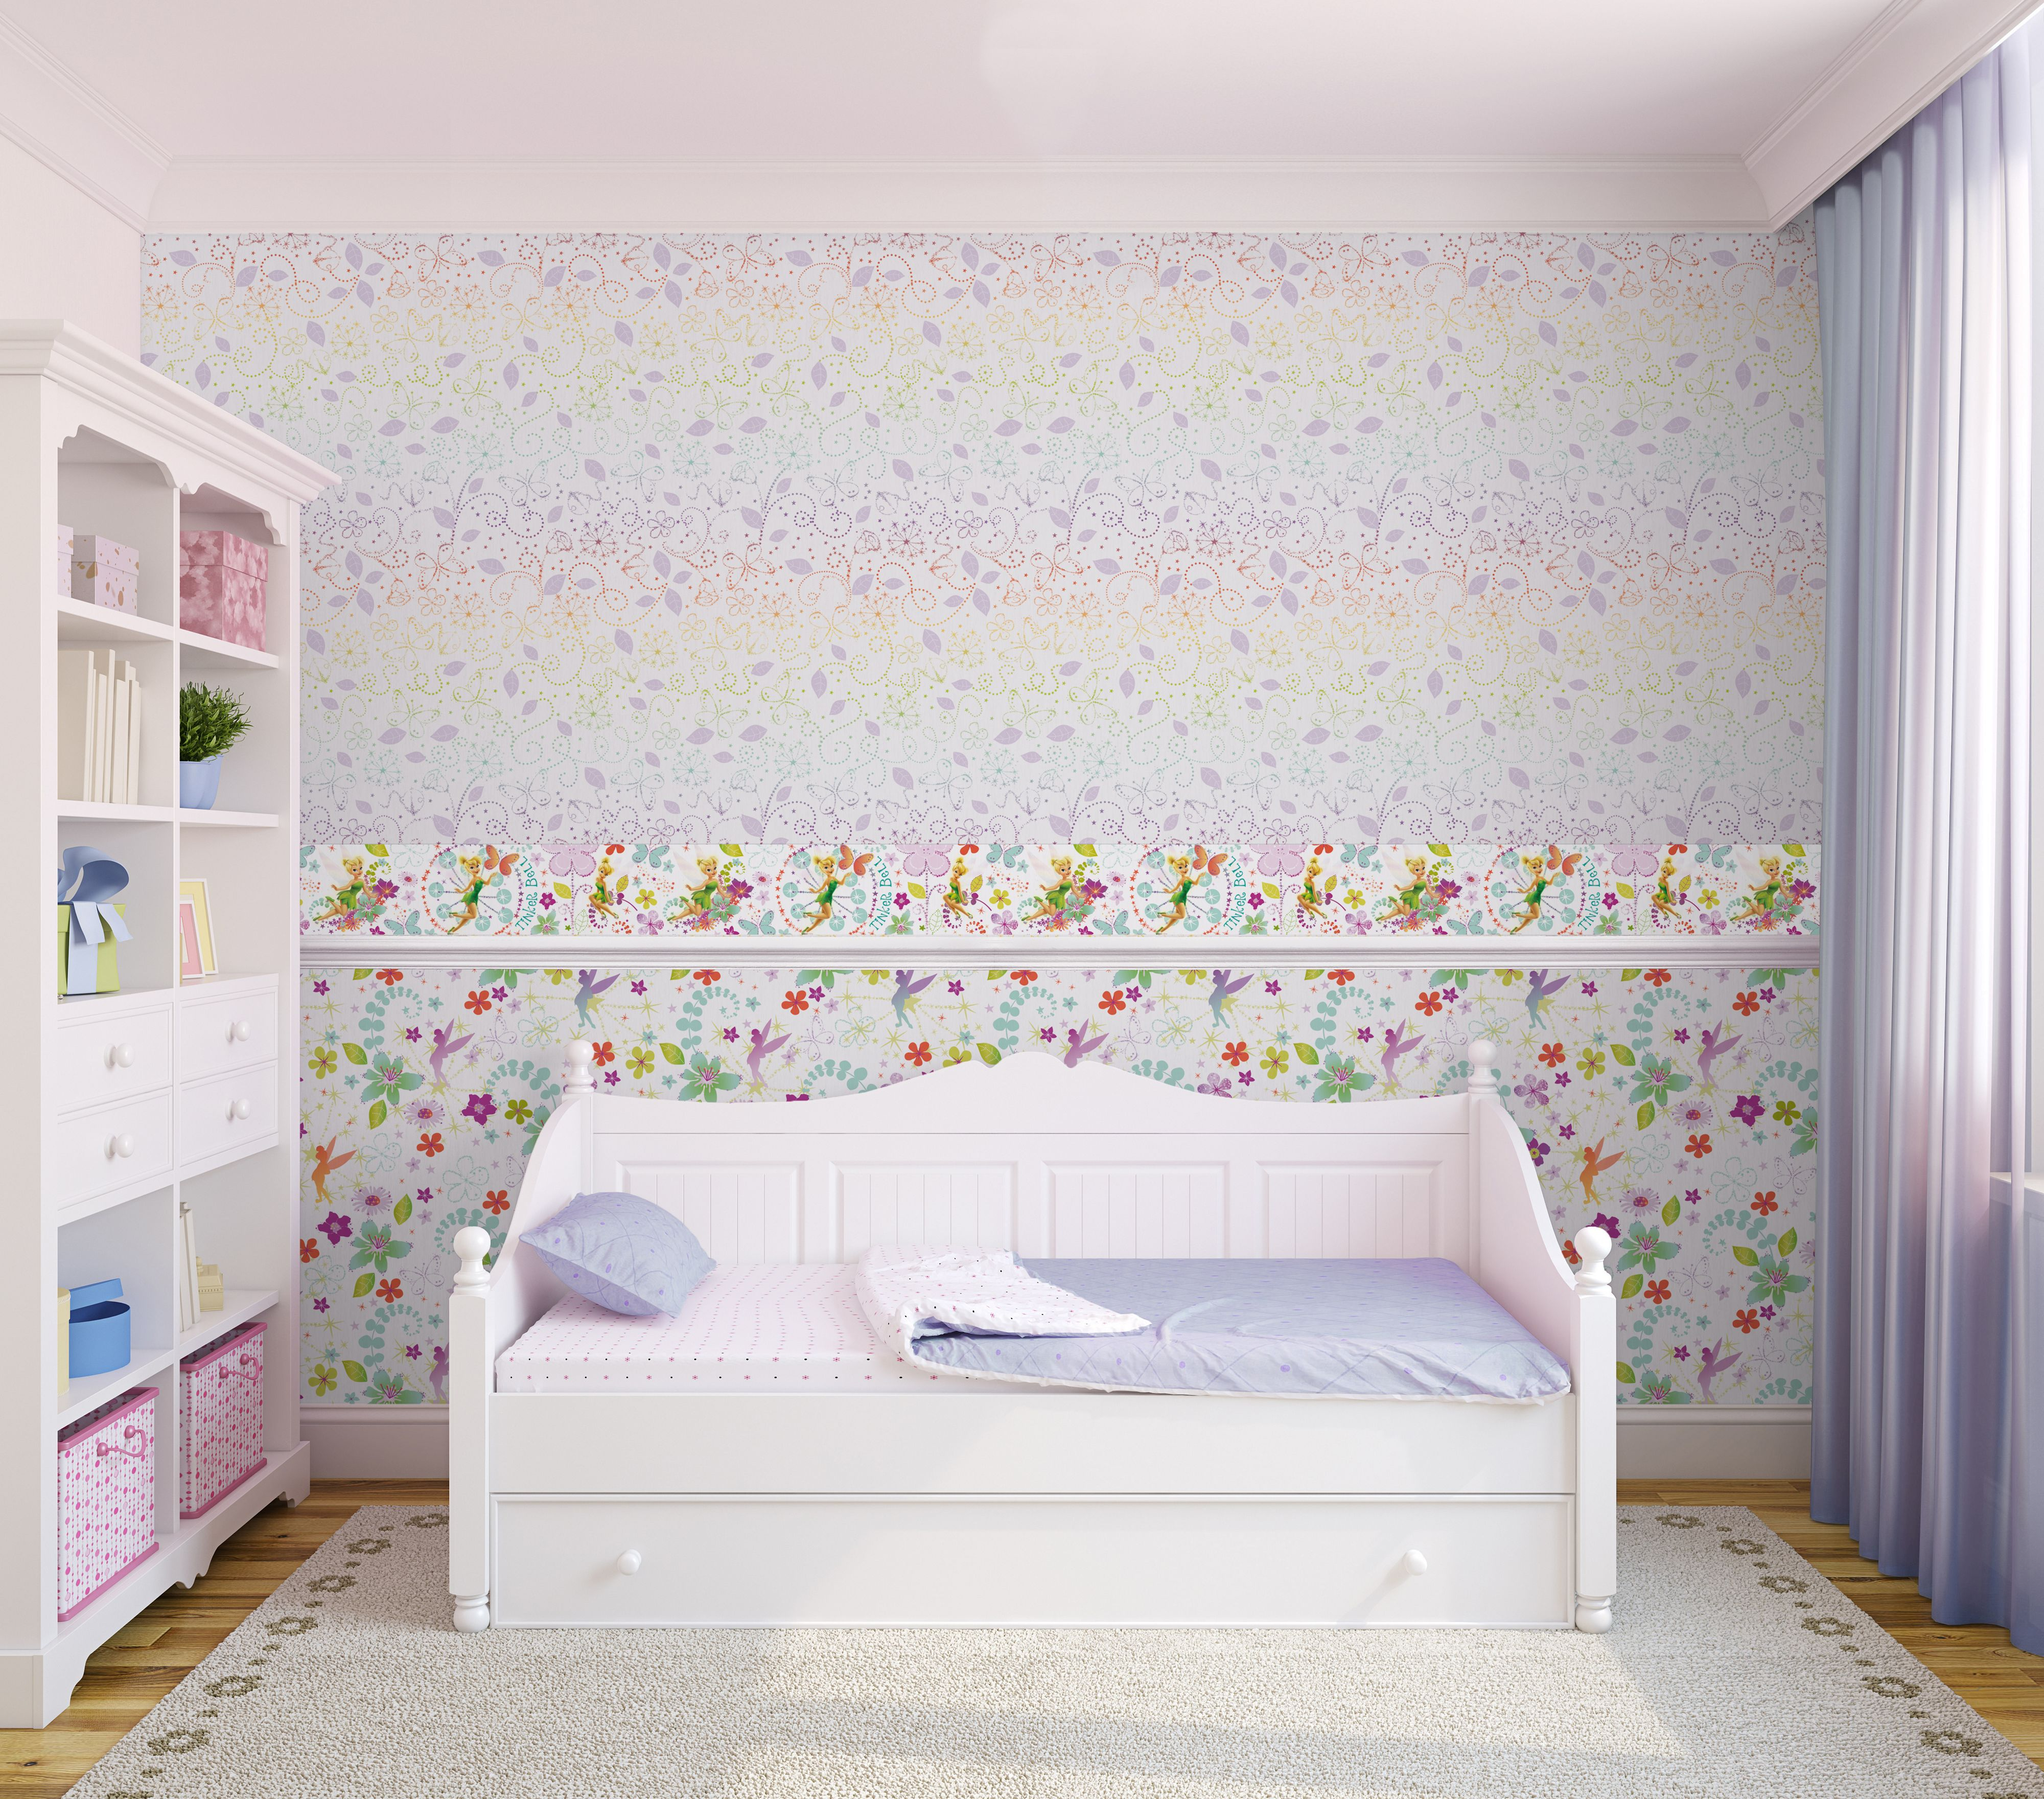 disney wallpaper for bedrooms. Disney Bedroom Wallpaper Graham Brown Lilac  Fairytale Girls House Fraser escortsdebiosca com